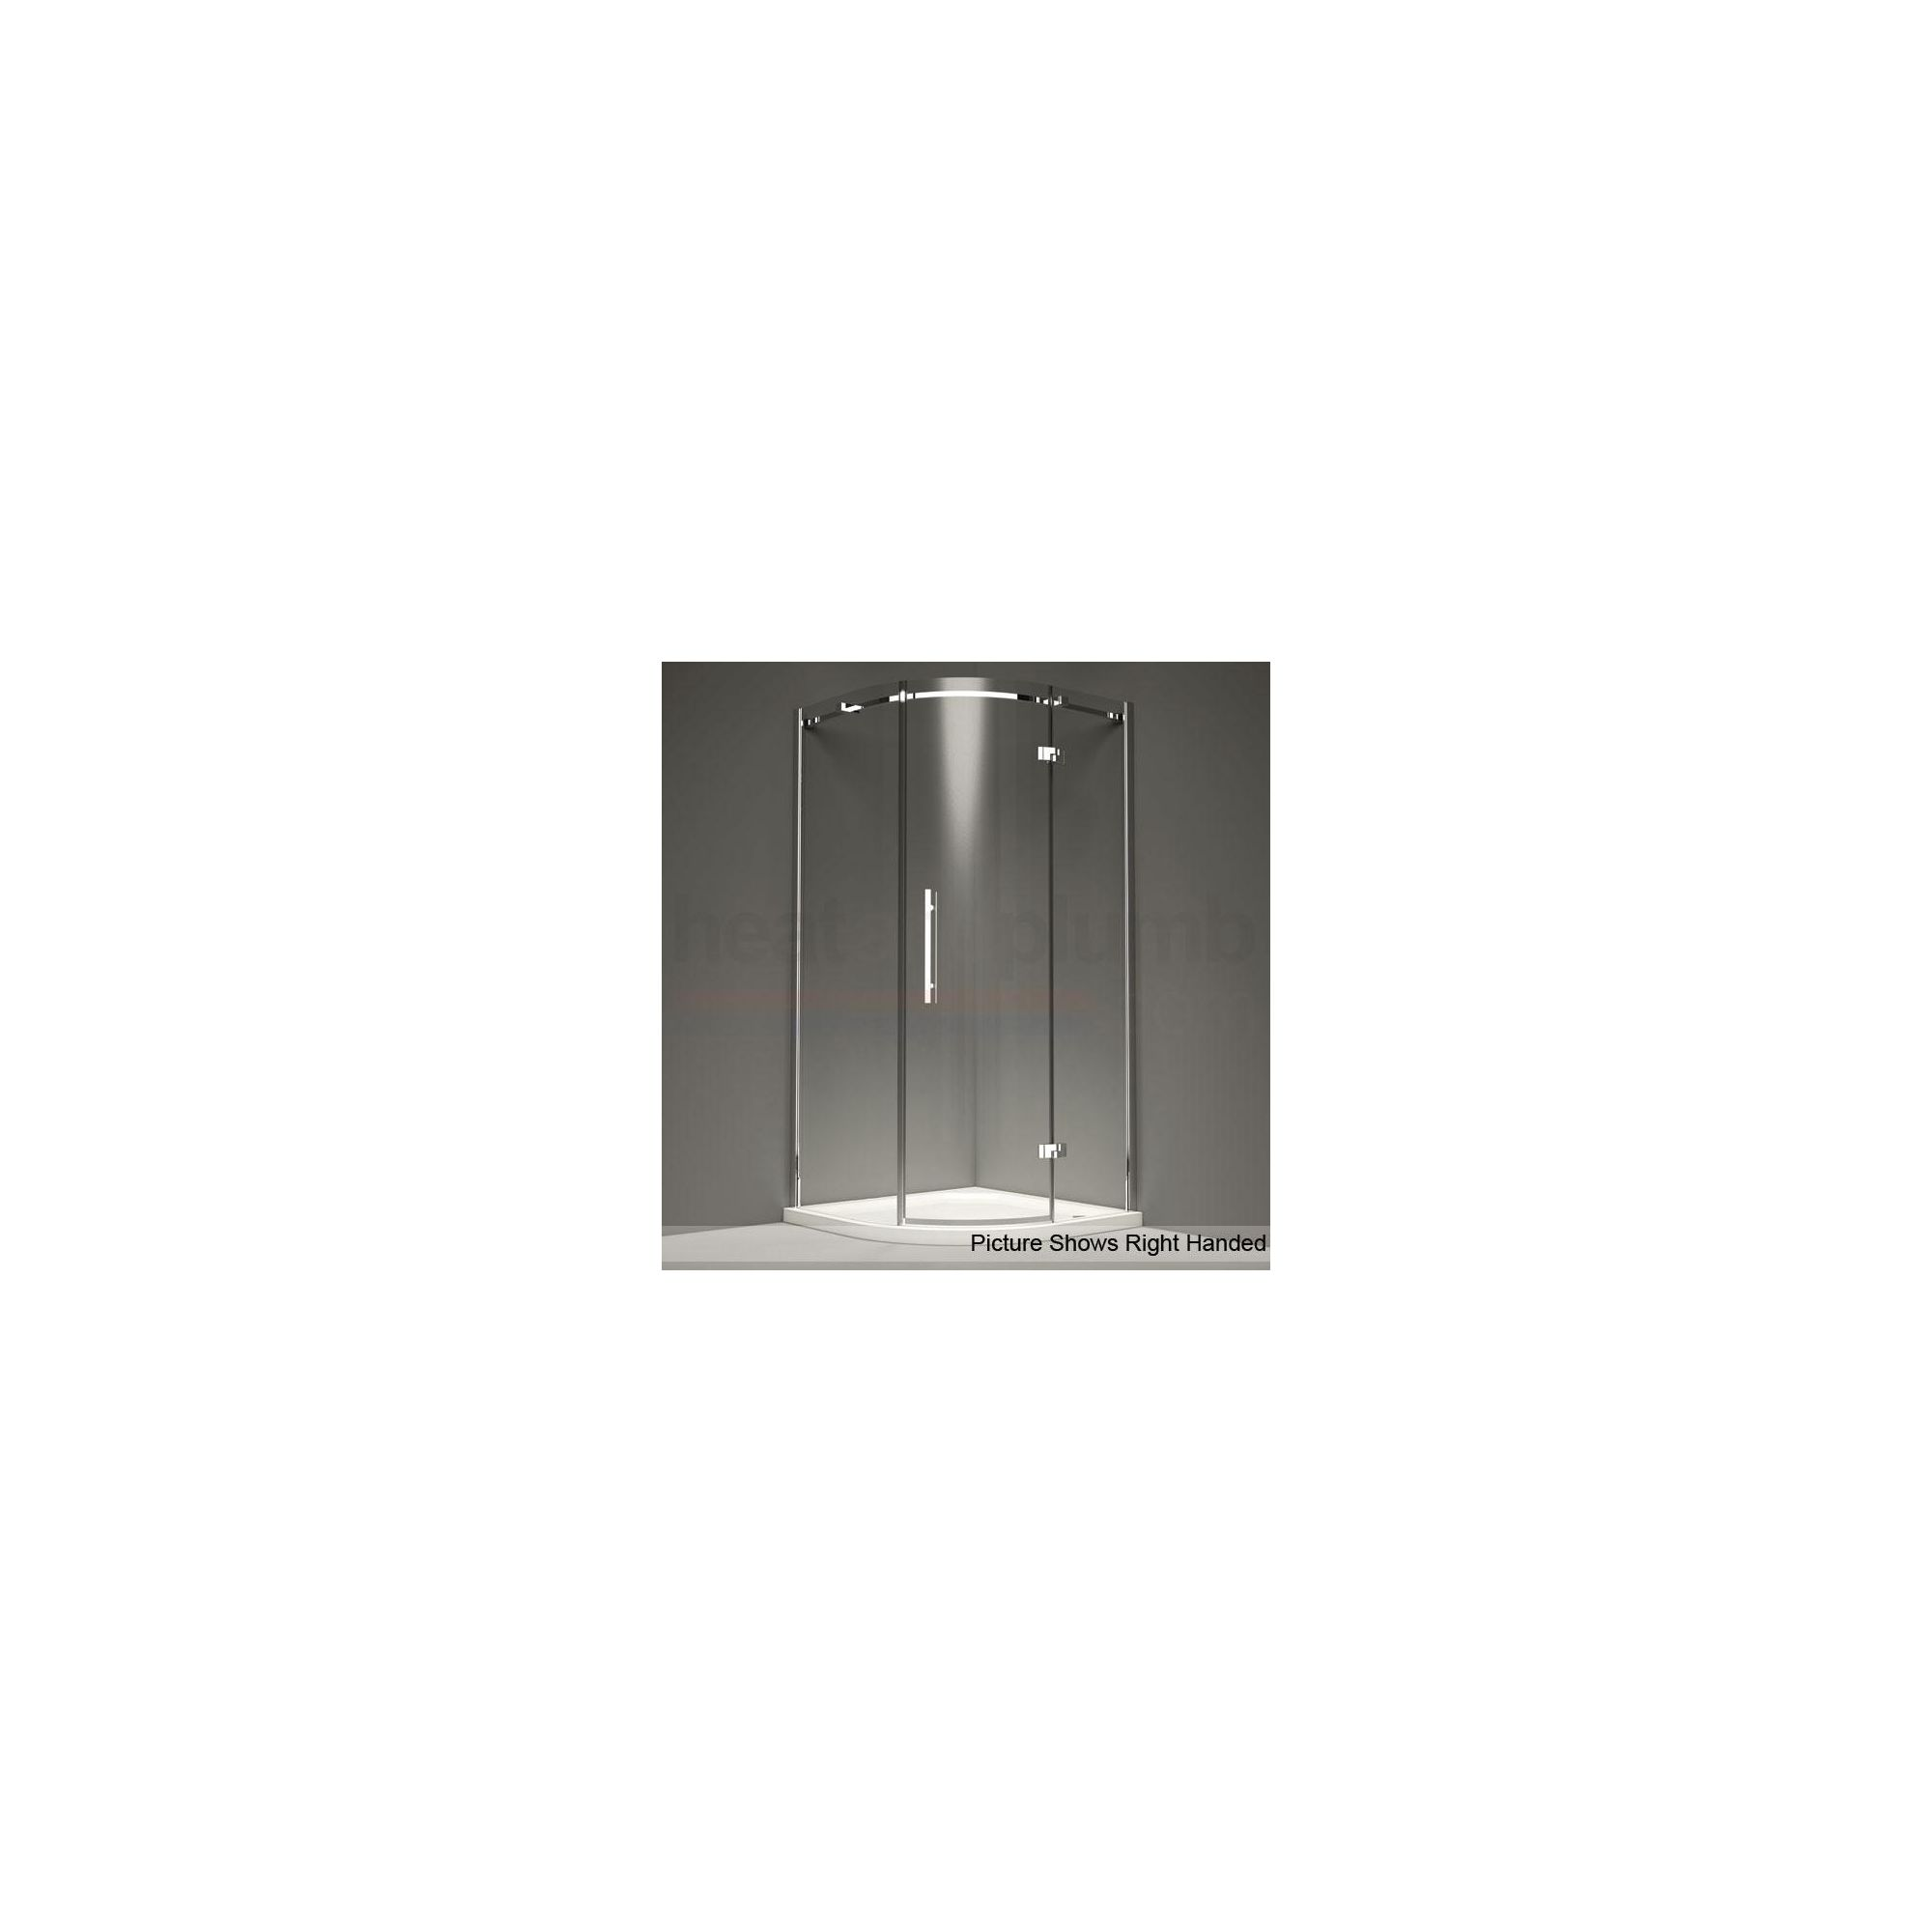 Merlyn Series 9 Hinged Door Curved Quadrant Shower Enclosure 900mm (Complete with Tray) - 8mm Glass at Tesco Direct